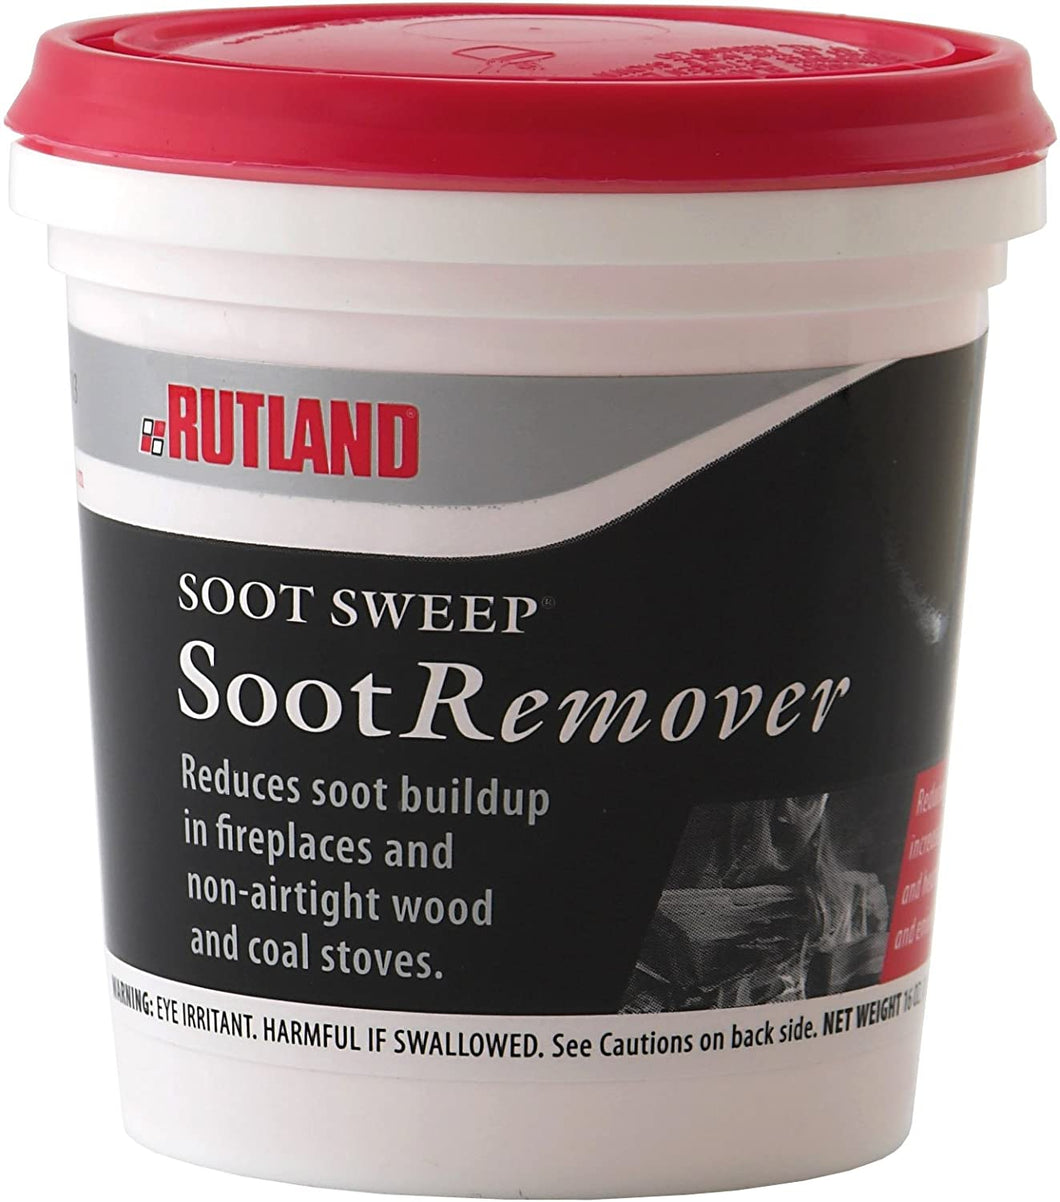 soot remover for wood stoves and fireplaces